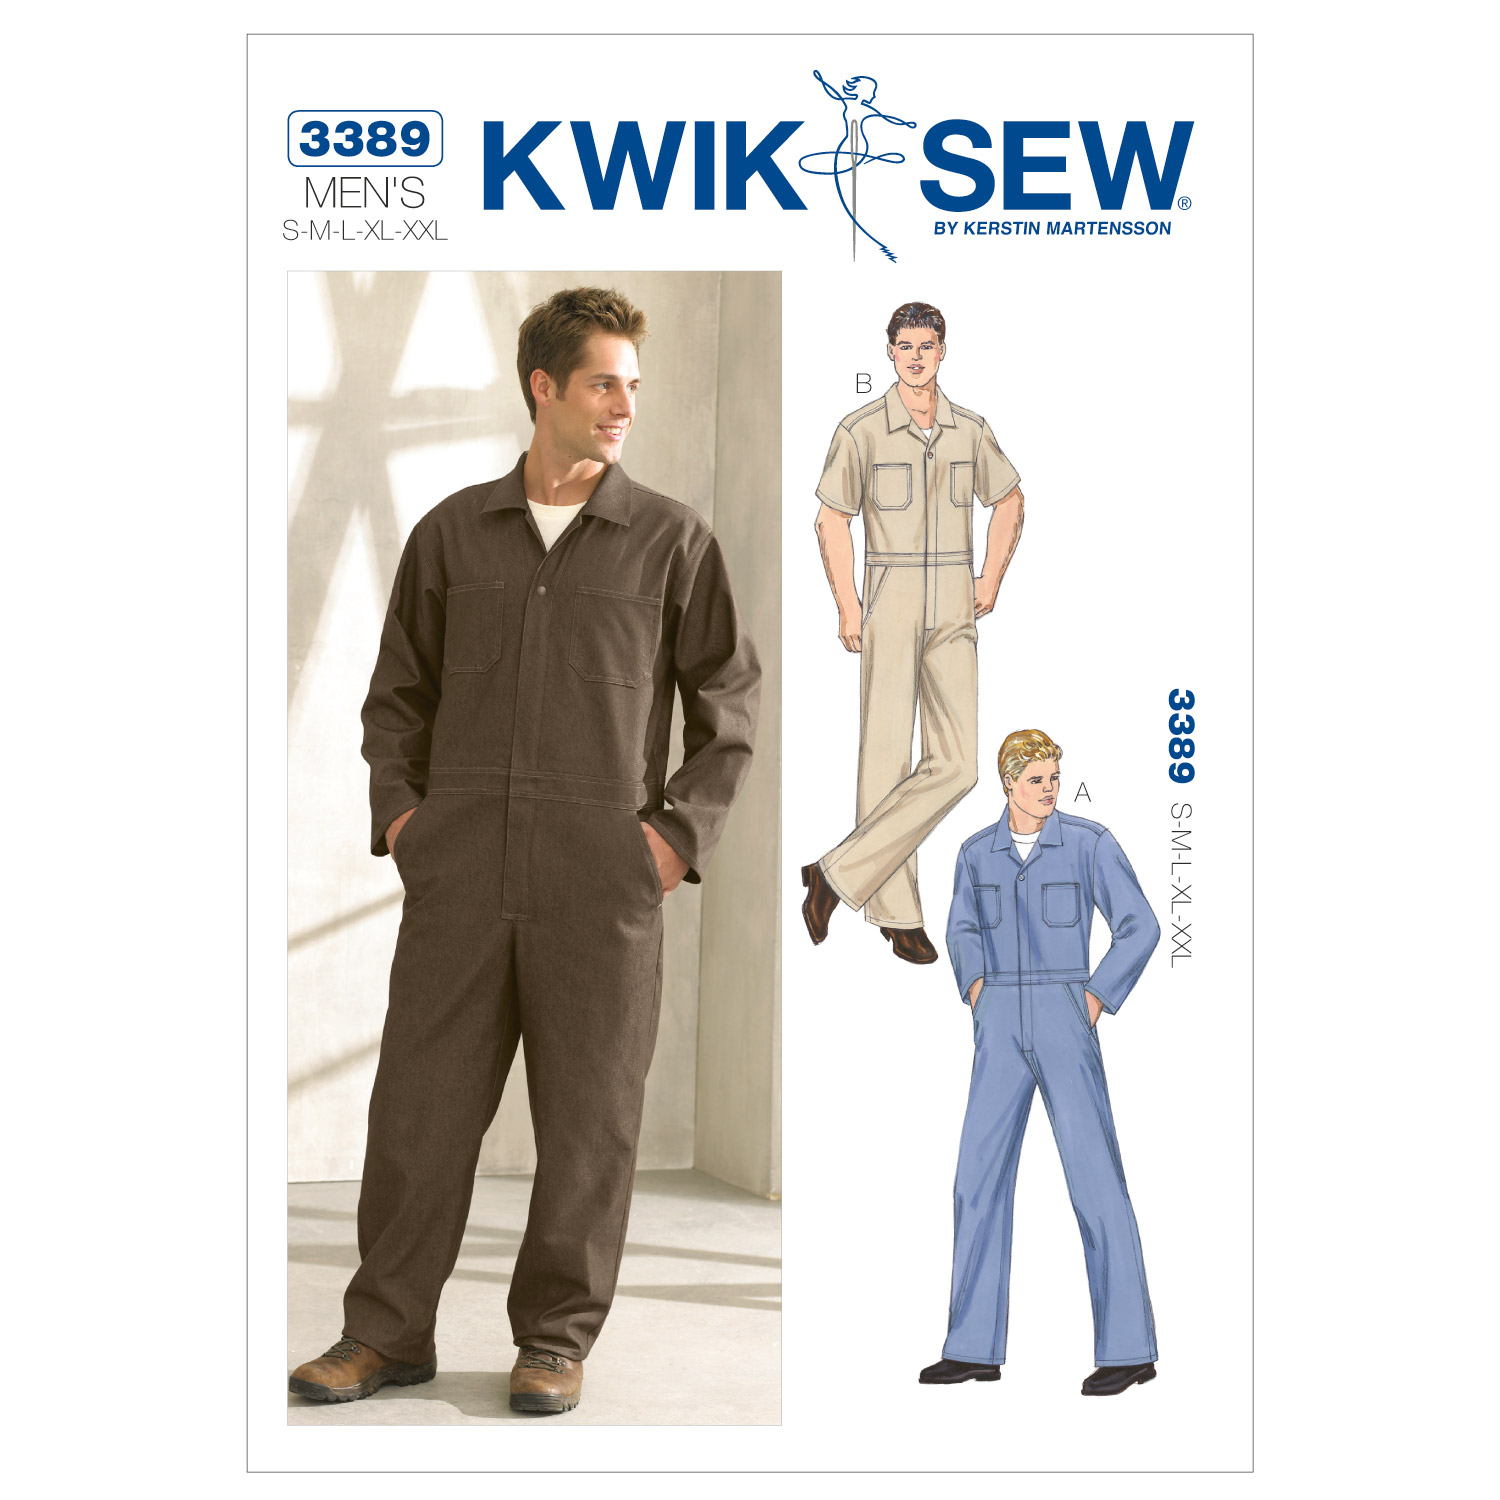 Men's Swing Dance Clothing to Keep You Cool Kwik Sew Mens Coveralls Pattern $13.00 AT vintagedancer.com